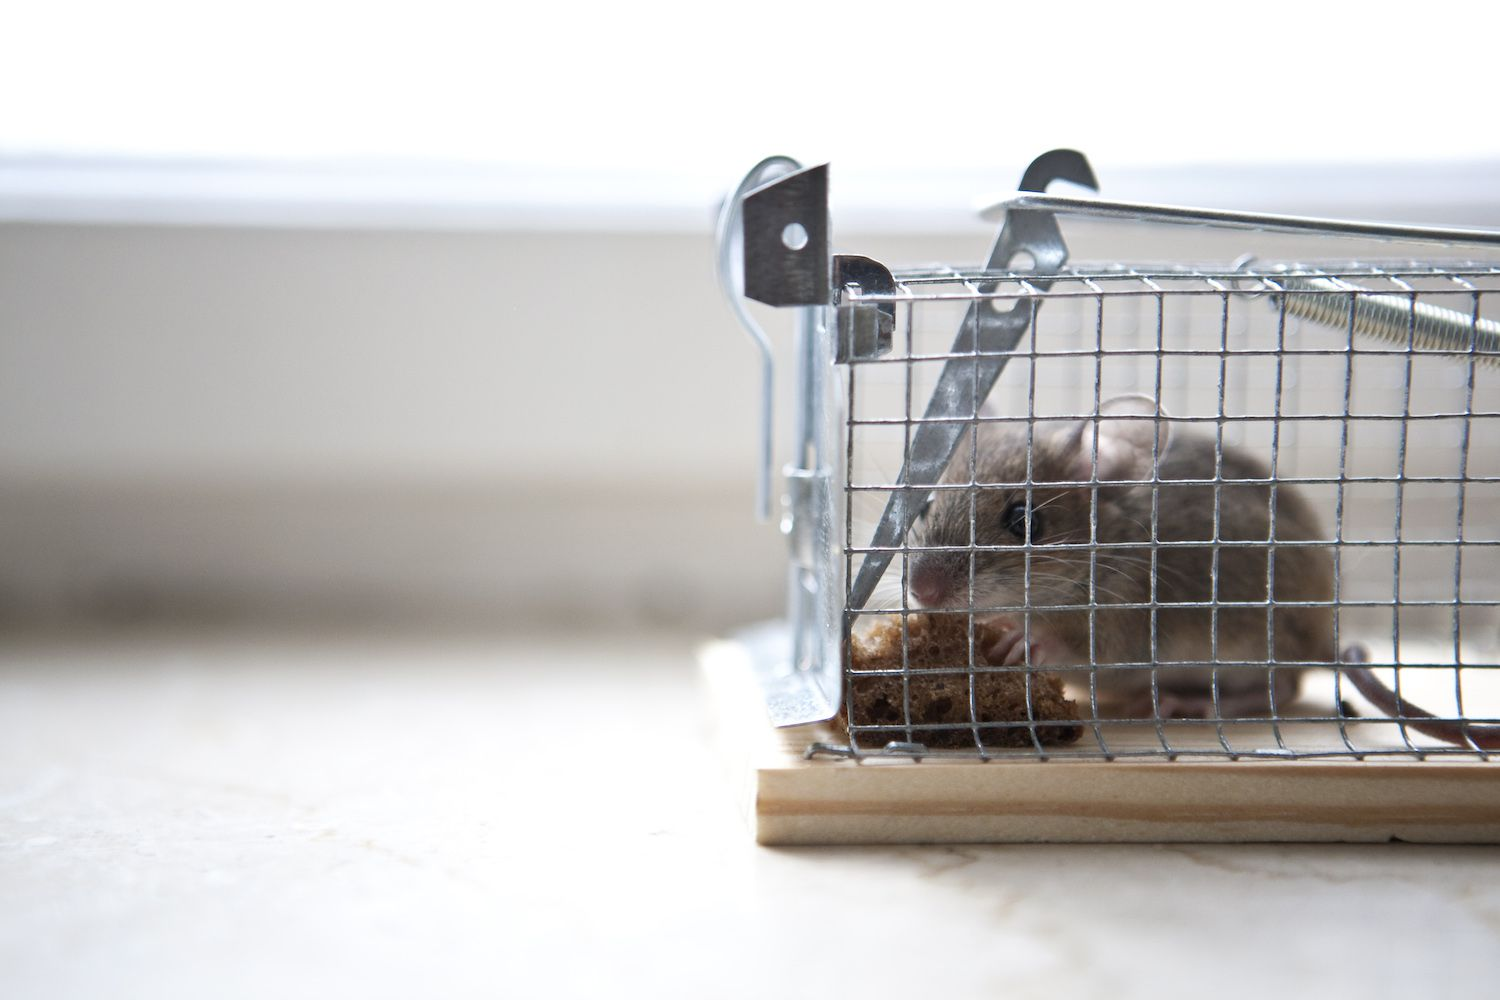 Trapped mouse eating some bread